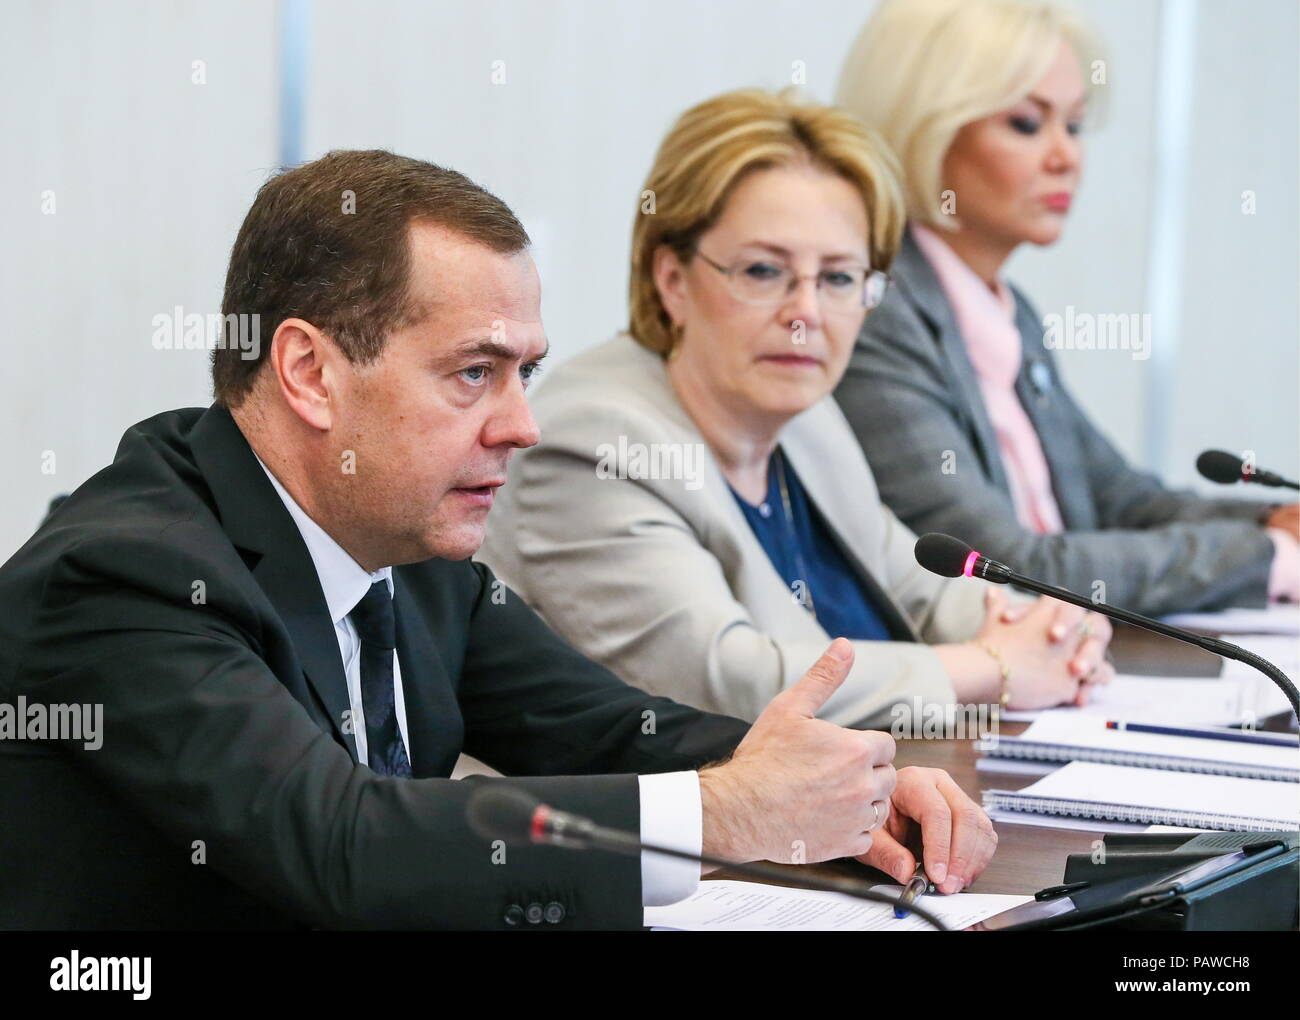 Russia. 25th July, 2018. MOSCOW REGION, RUSSIA - JULY 25, 2018: Russia's Prime Minister Dmitry Medvedev, Healthcare Minister Veronika Skvortsova, and her deputy Tatyana Yakovleva (L-R) attend a meeting on Russian citizens' cancer treatment, held at an oncoradiological cancer centre in the city of Balashikha. Yekaterina Shtukina/TASS Credit: ITAR-TASS News Agency/Alamy Live News - Stock Image